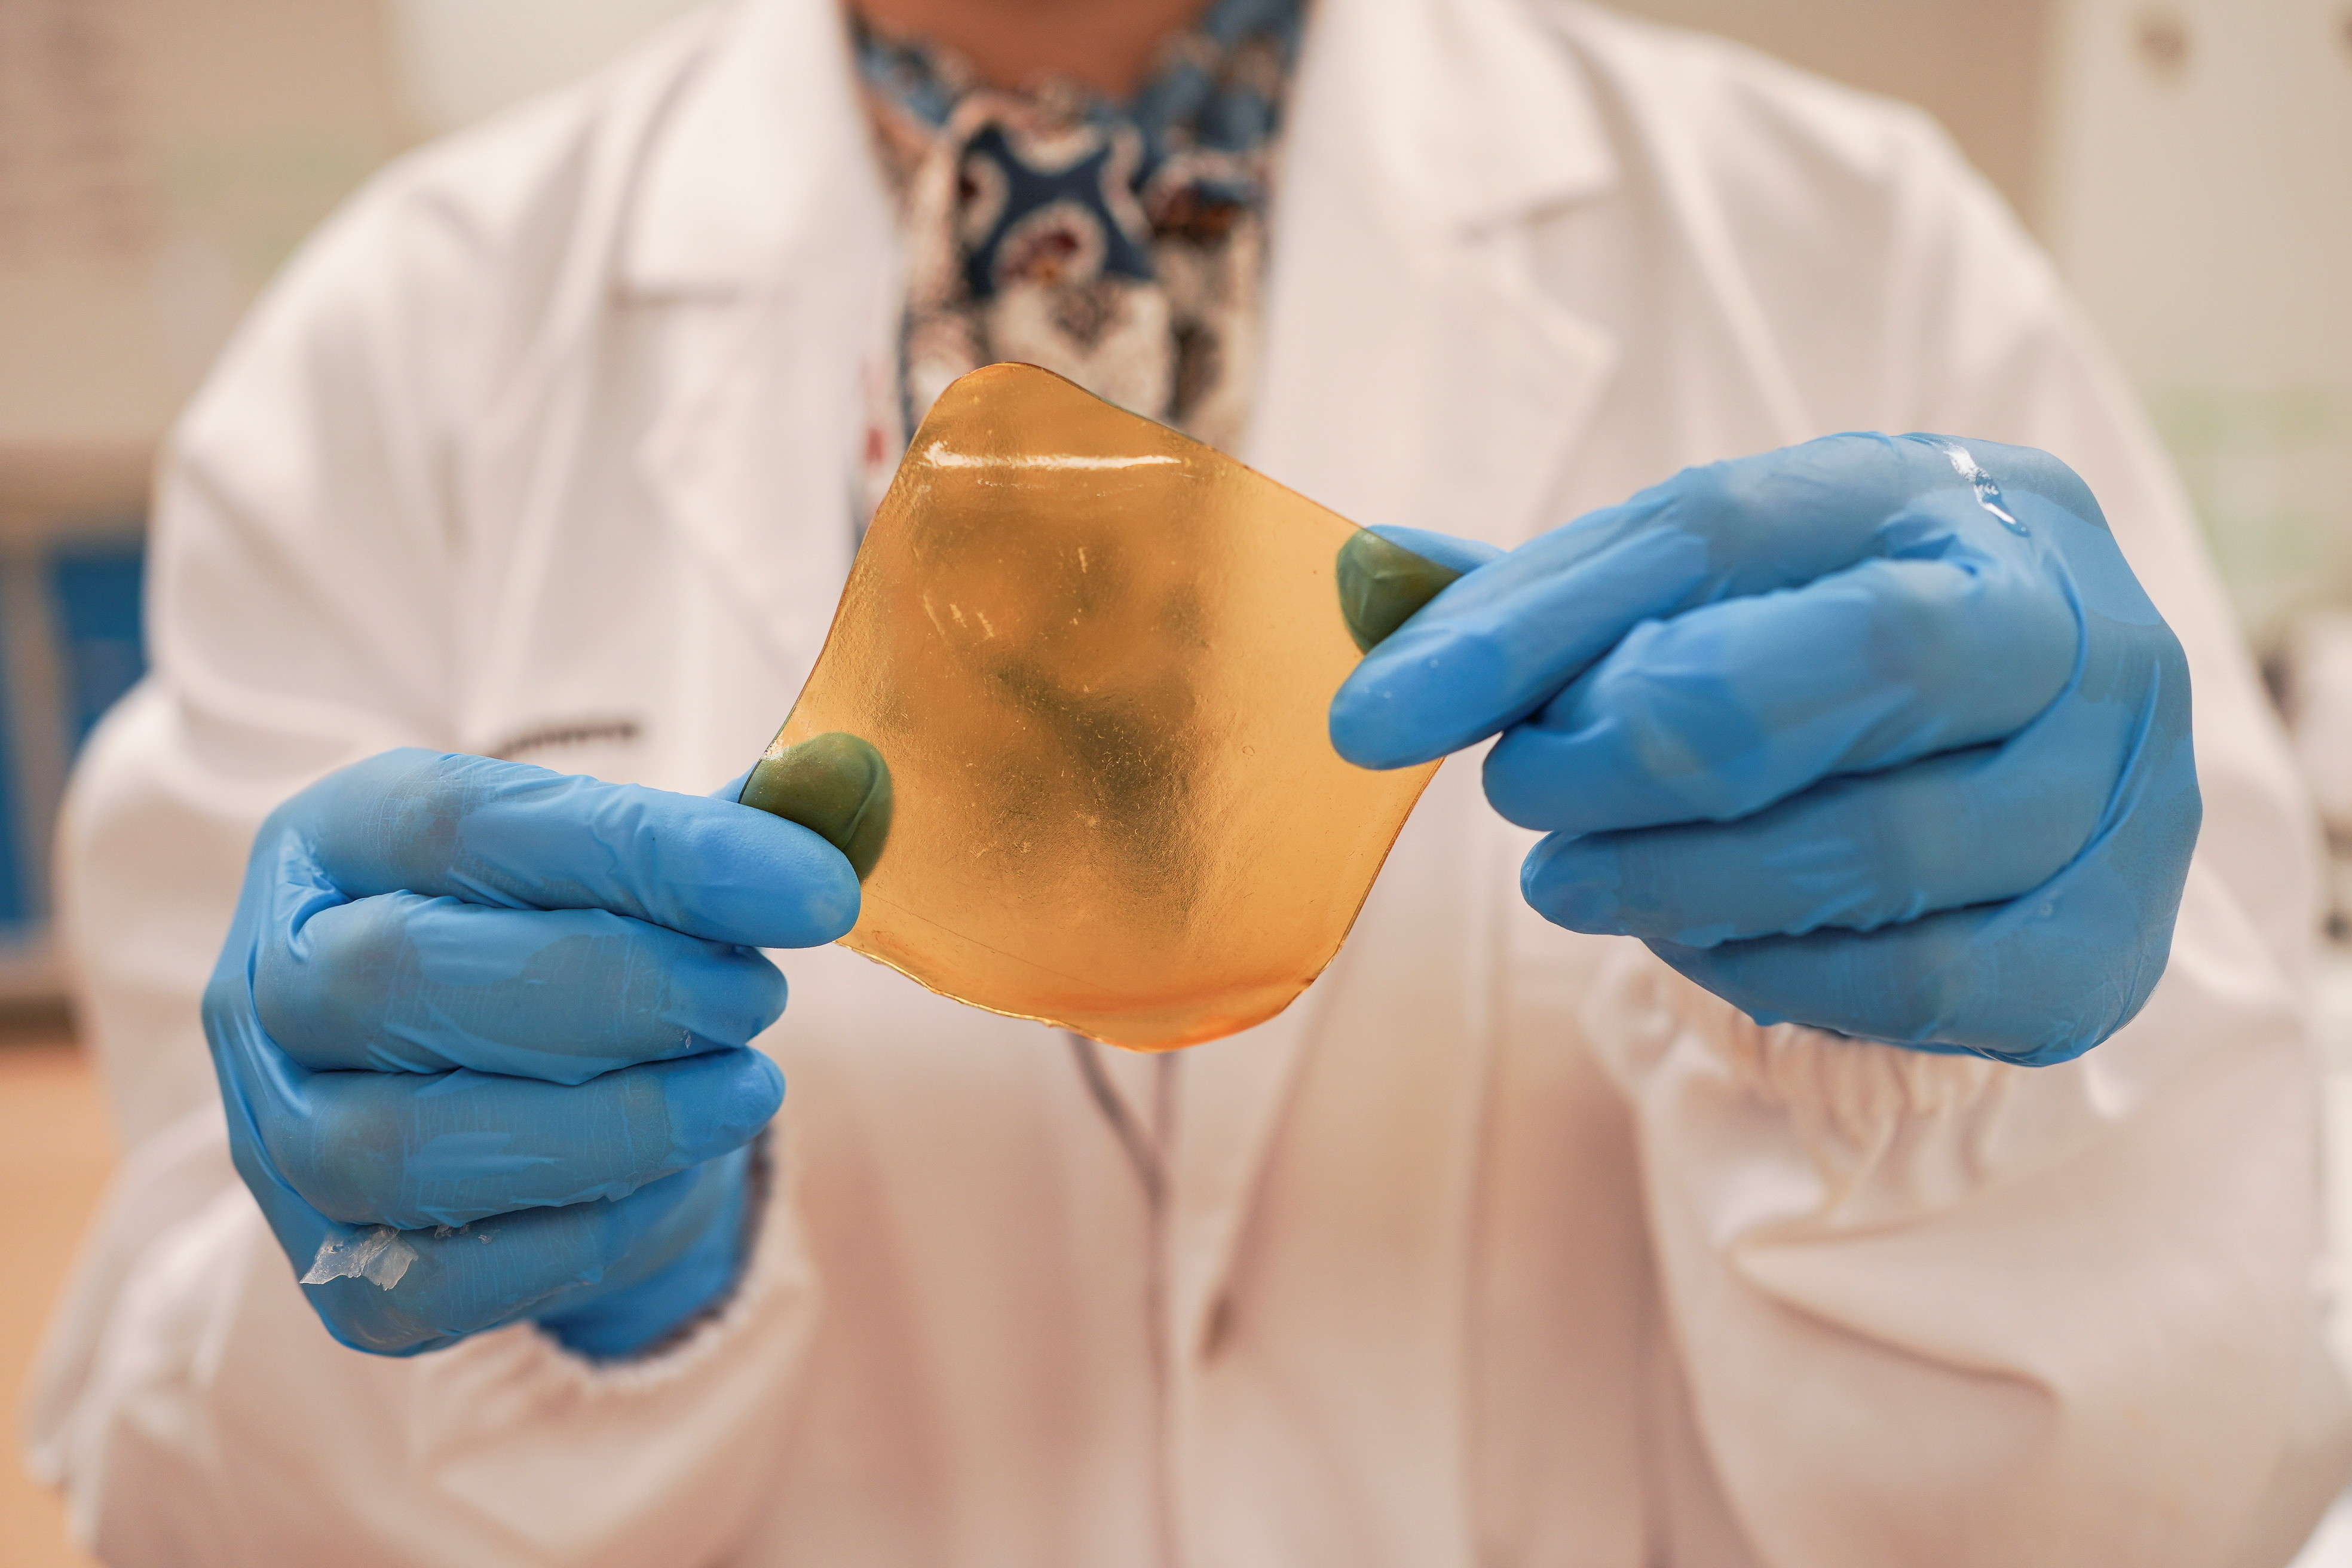 A researcher holds a hydrogel sheet made out of durian husk with yeast phenolics in Singapore September 16, 2021. Picture taken September 16, 2021. REUTERS/Lee Ying Shan - RC2VQP908K2L